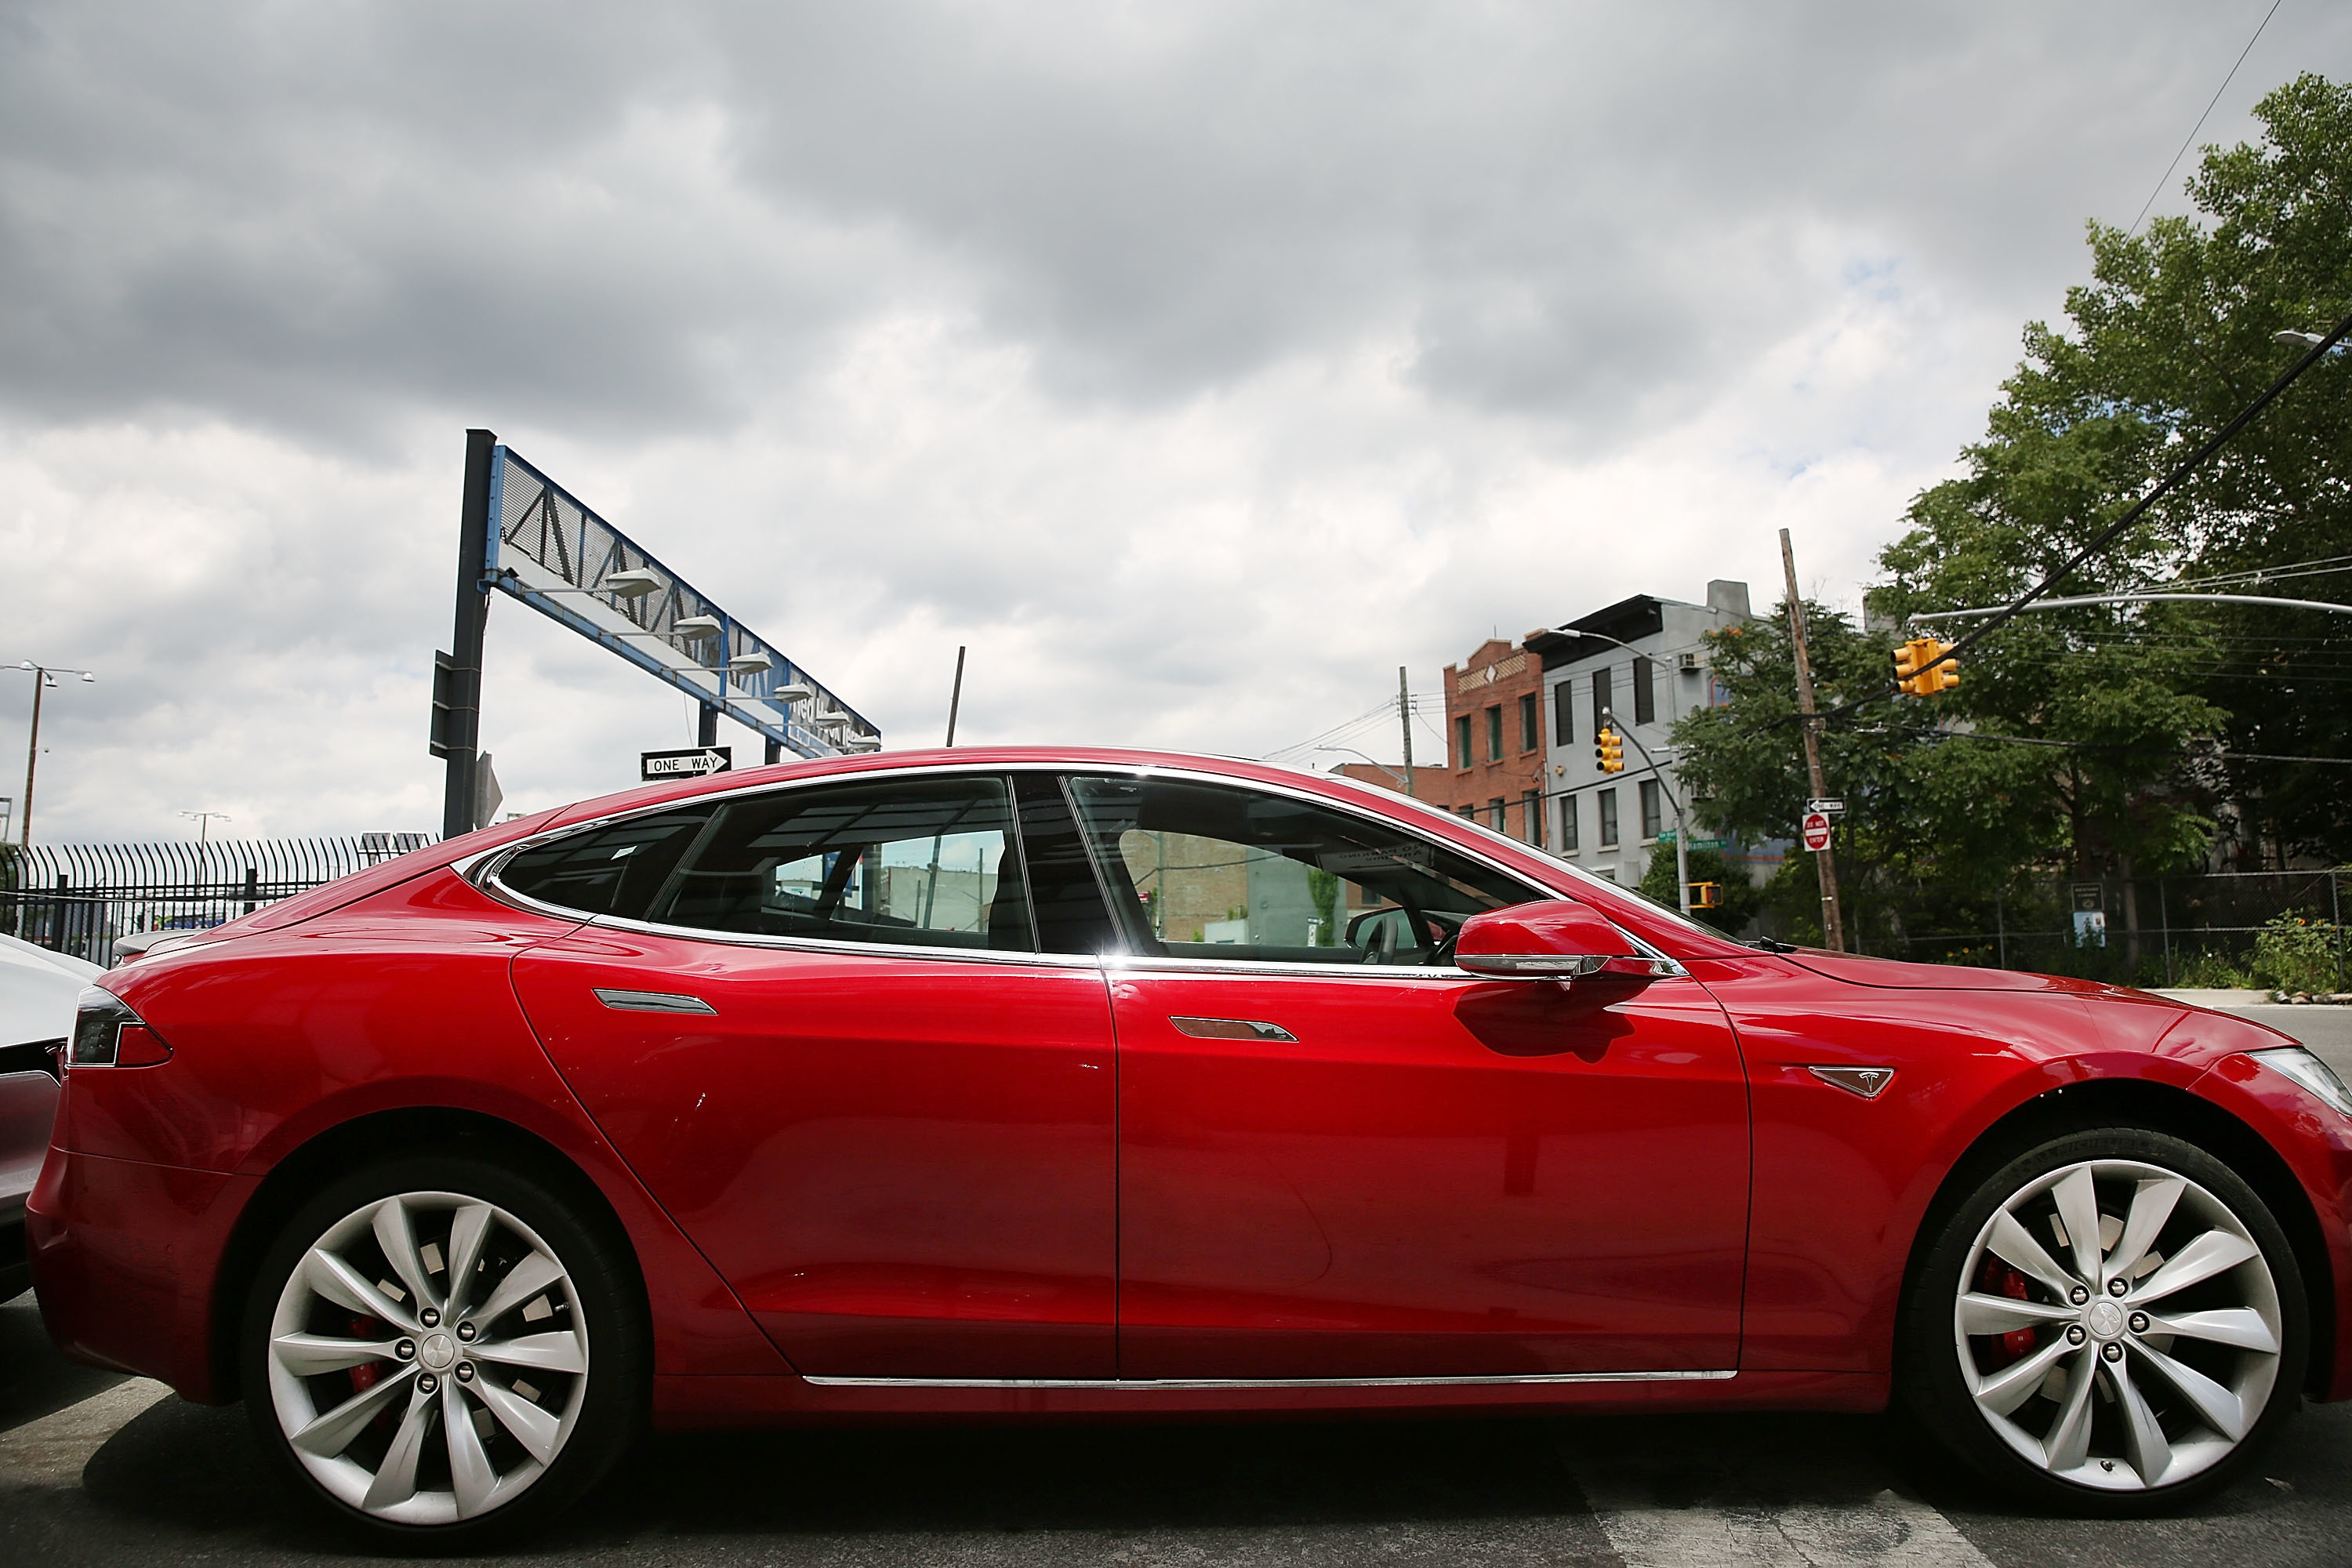 A Tesla model S sits parked outside of a new Tesla showroom and service center in Red Hook, Brooklyn. Teslas are wired with AT&T-backed connectivity in 2013.